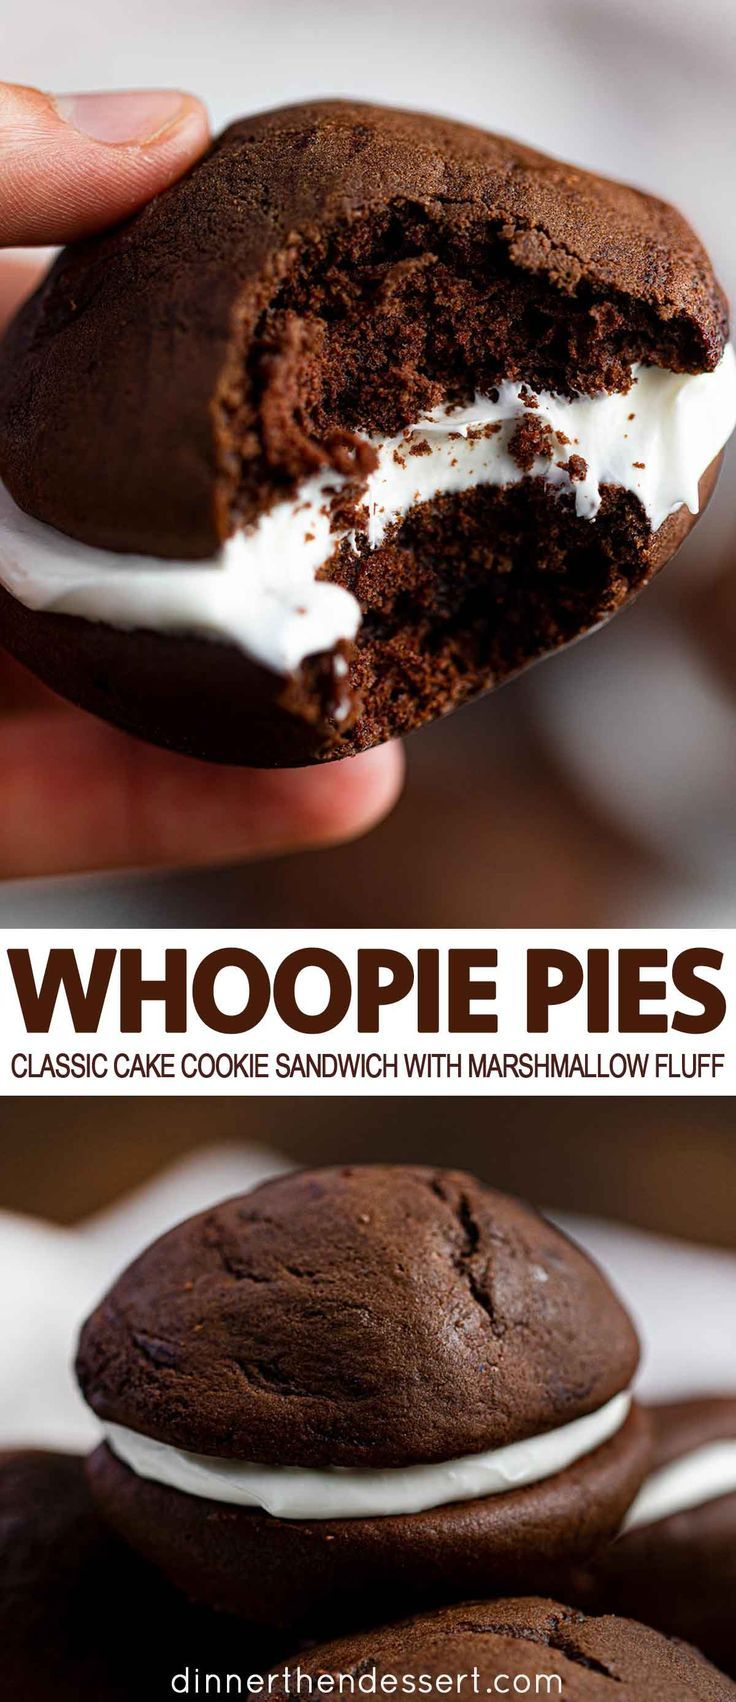 Whoopie Pies are a rich chocolate cake cookie sand…